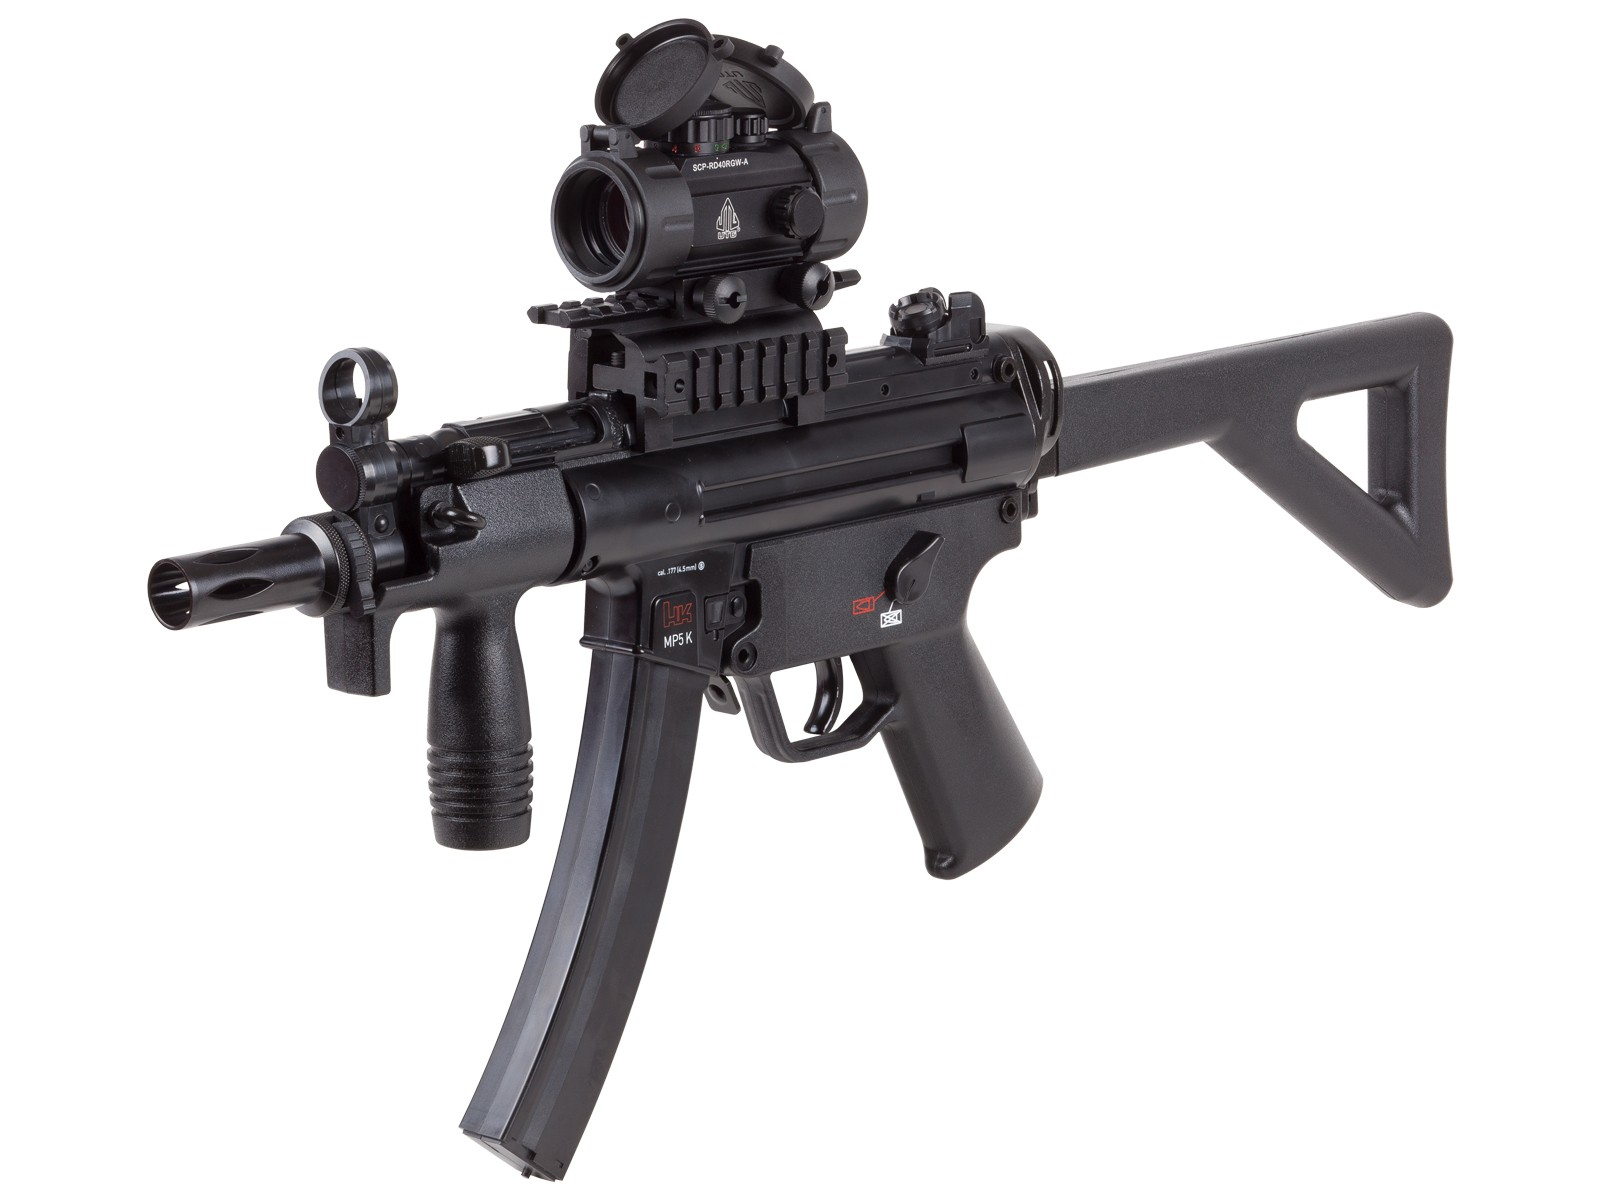 H&K MP5 K-PDW CO2 BB SMG Combo 0.177